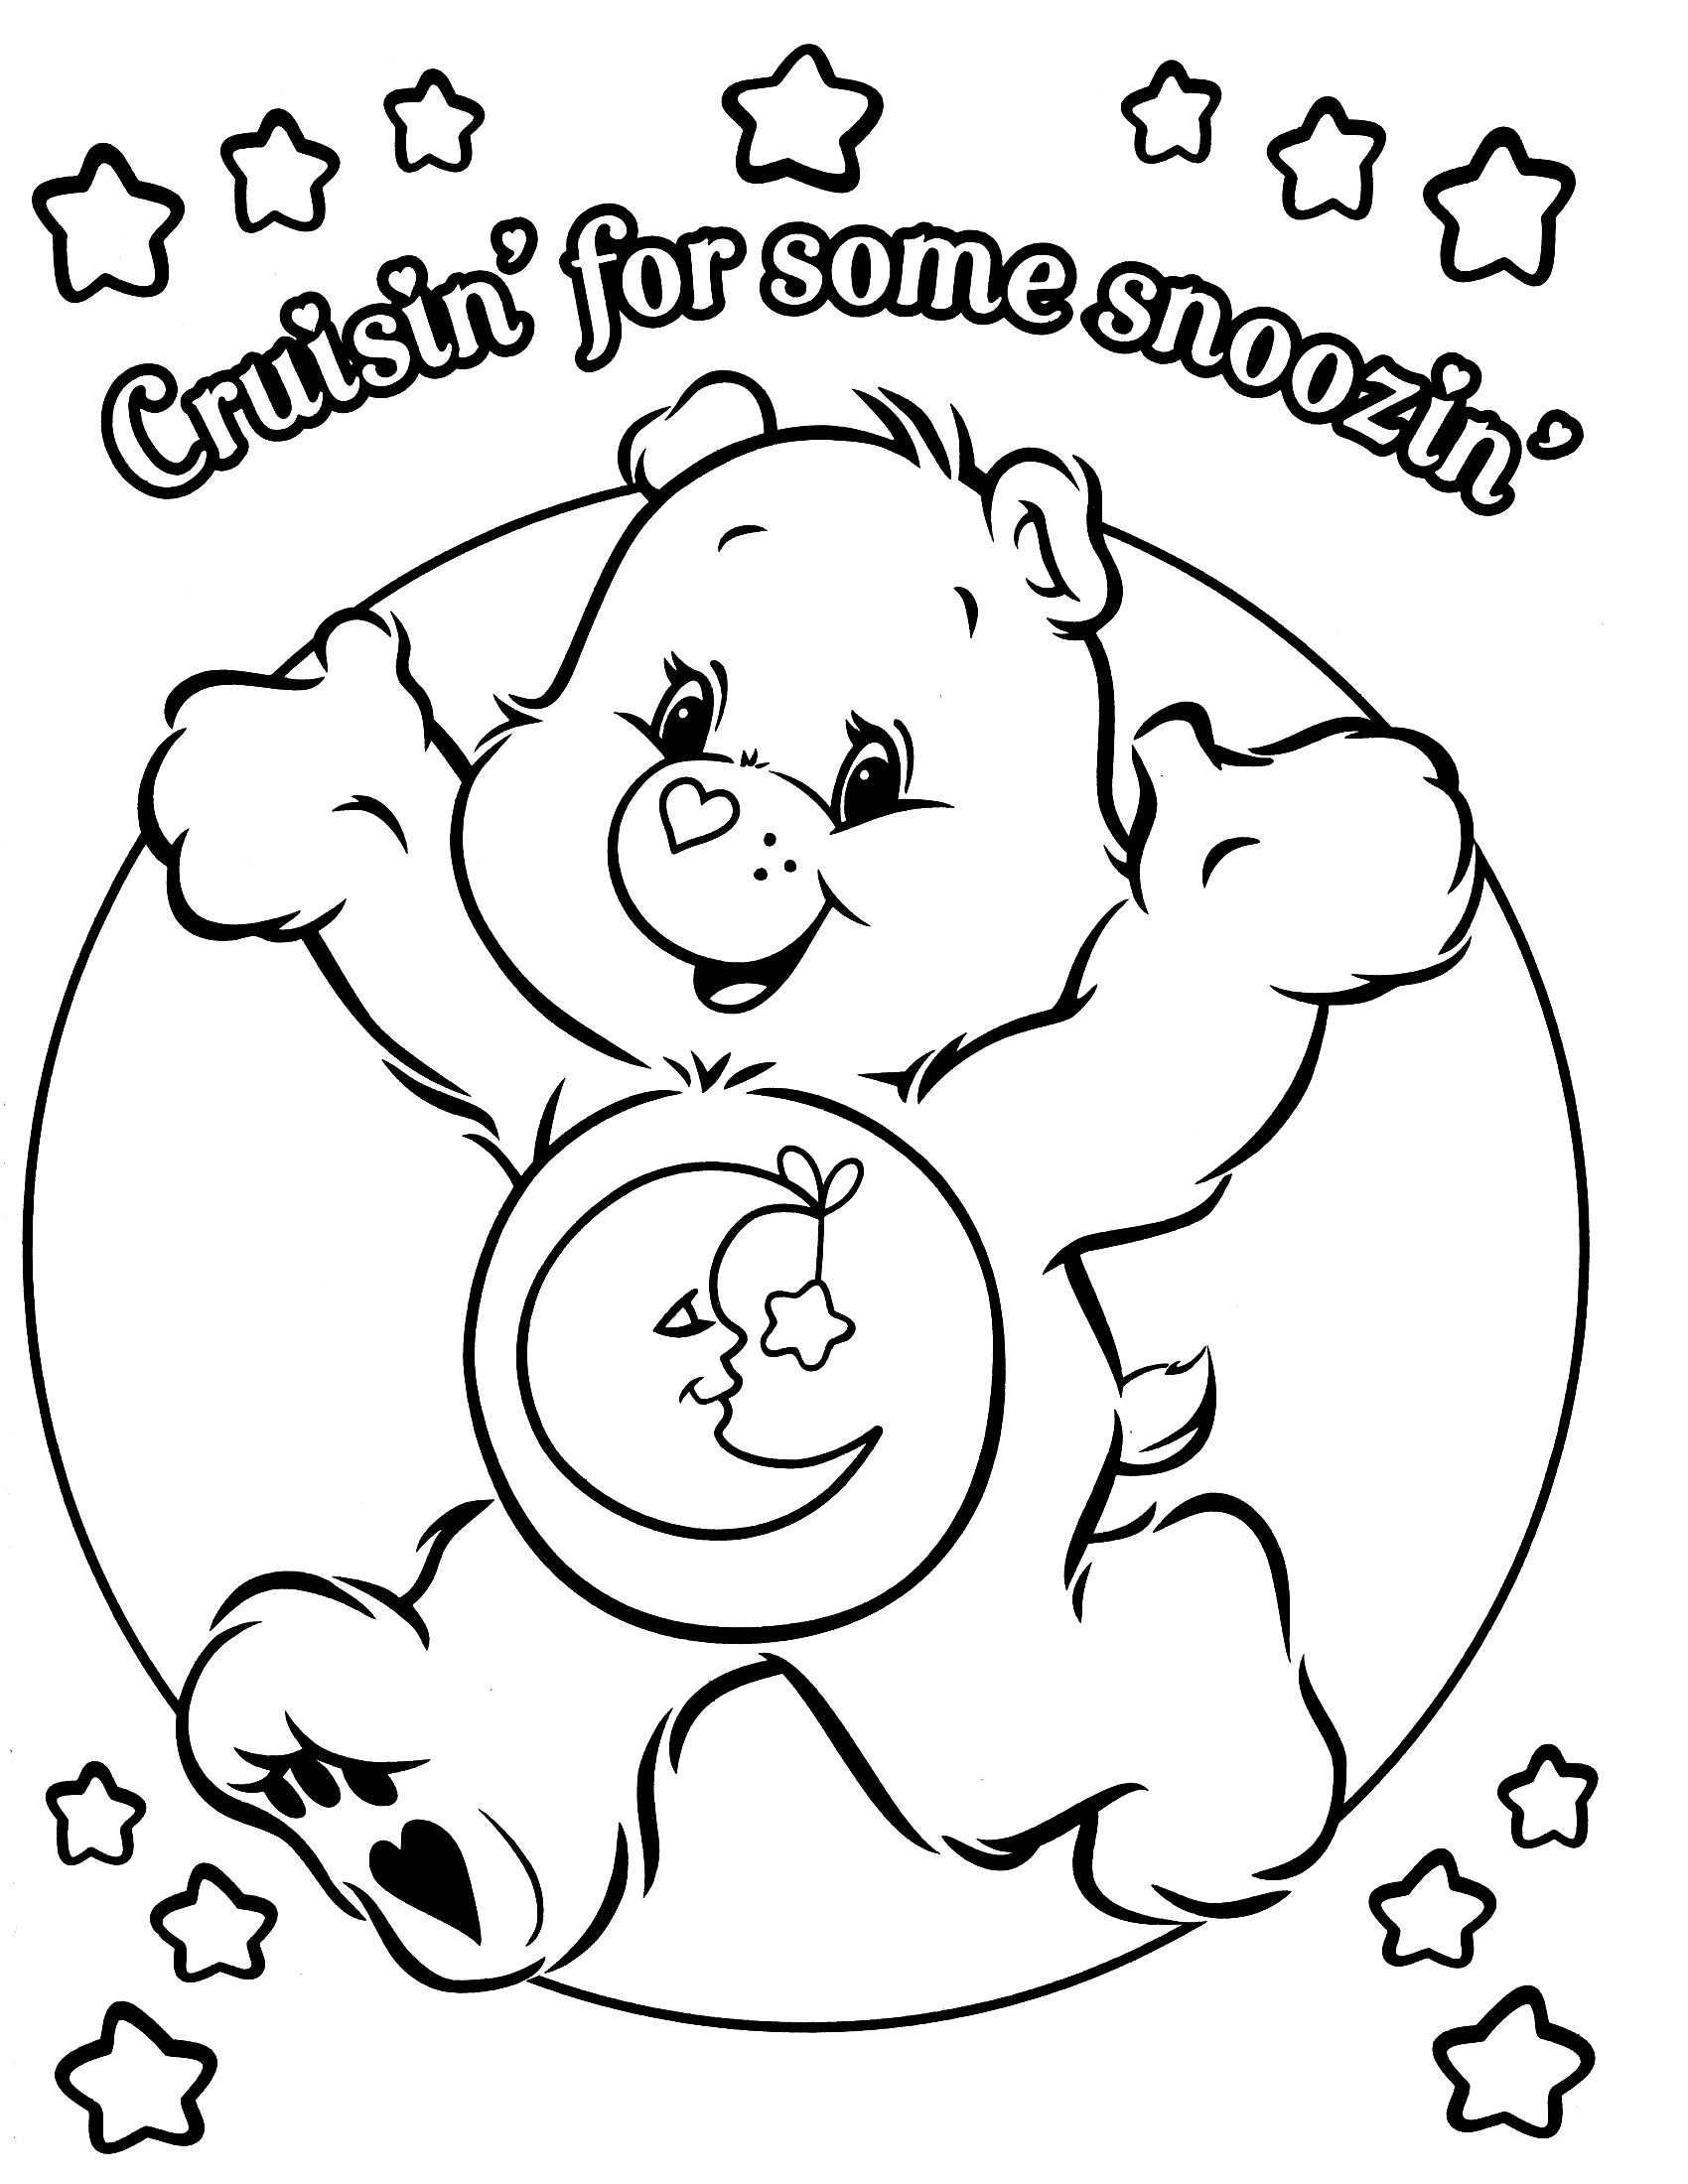 Care Bears Coloring Page Bear Coloring Pages Coloring Books Disney Coloring Pages